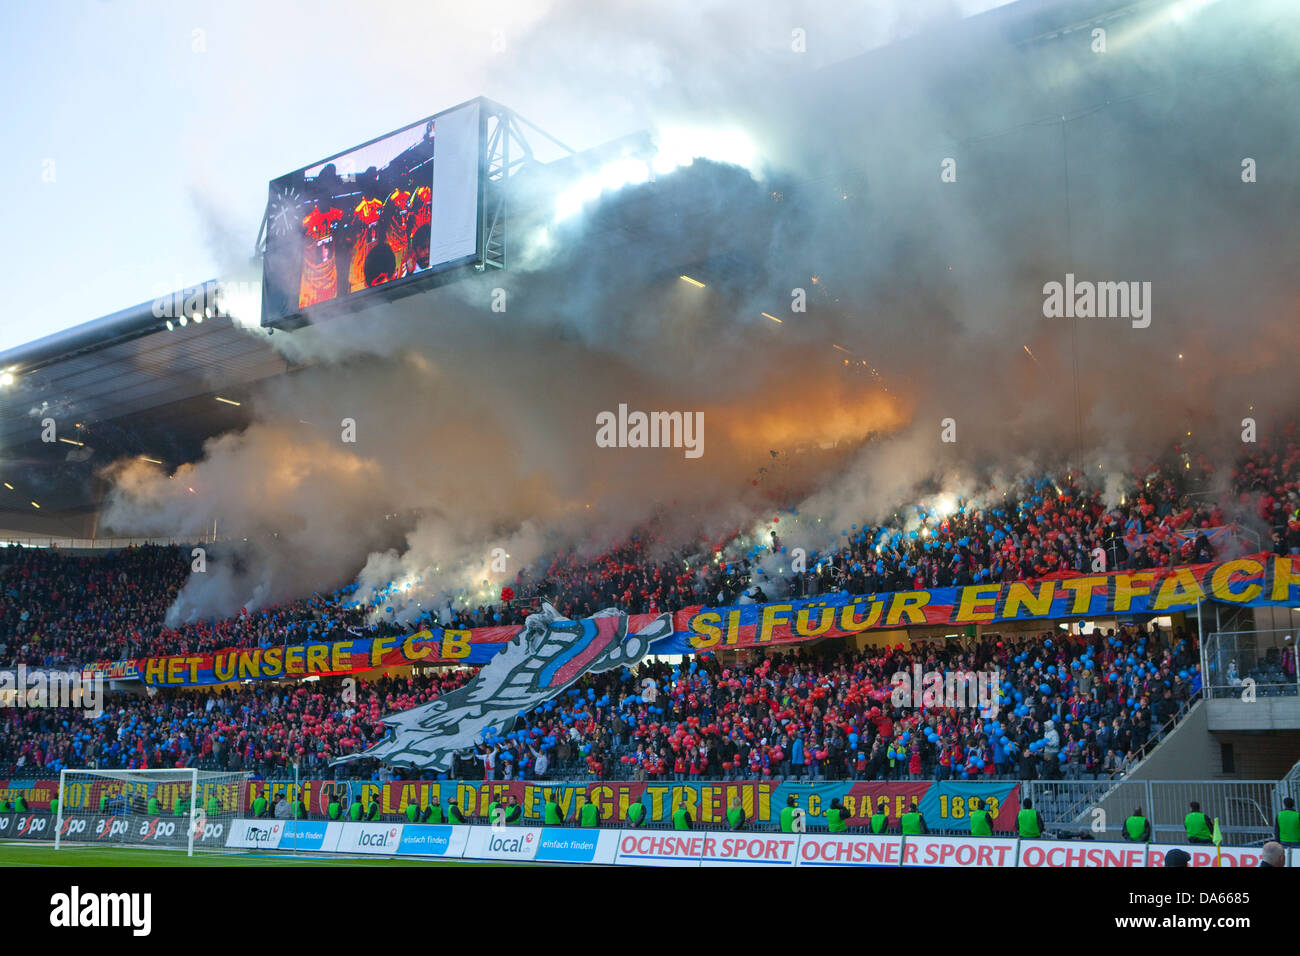 Fireworks, Stade de Suisse, stadium, Cup-final, canton, Bern, arrangement, football, soccer, spectator, smoke, fans, Stock Photo